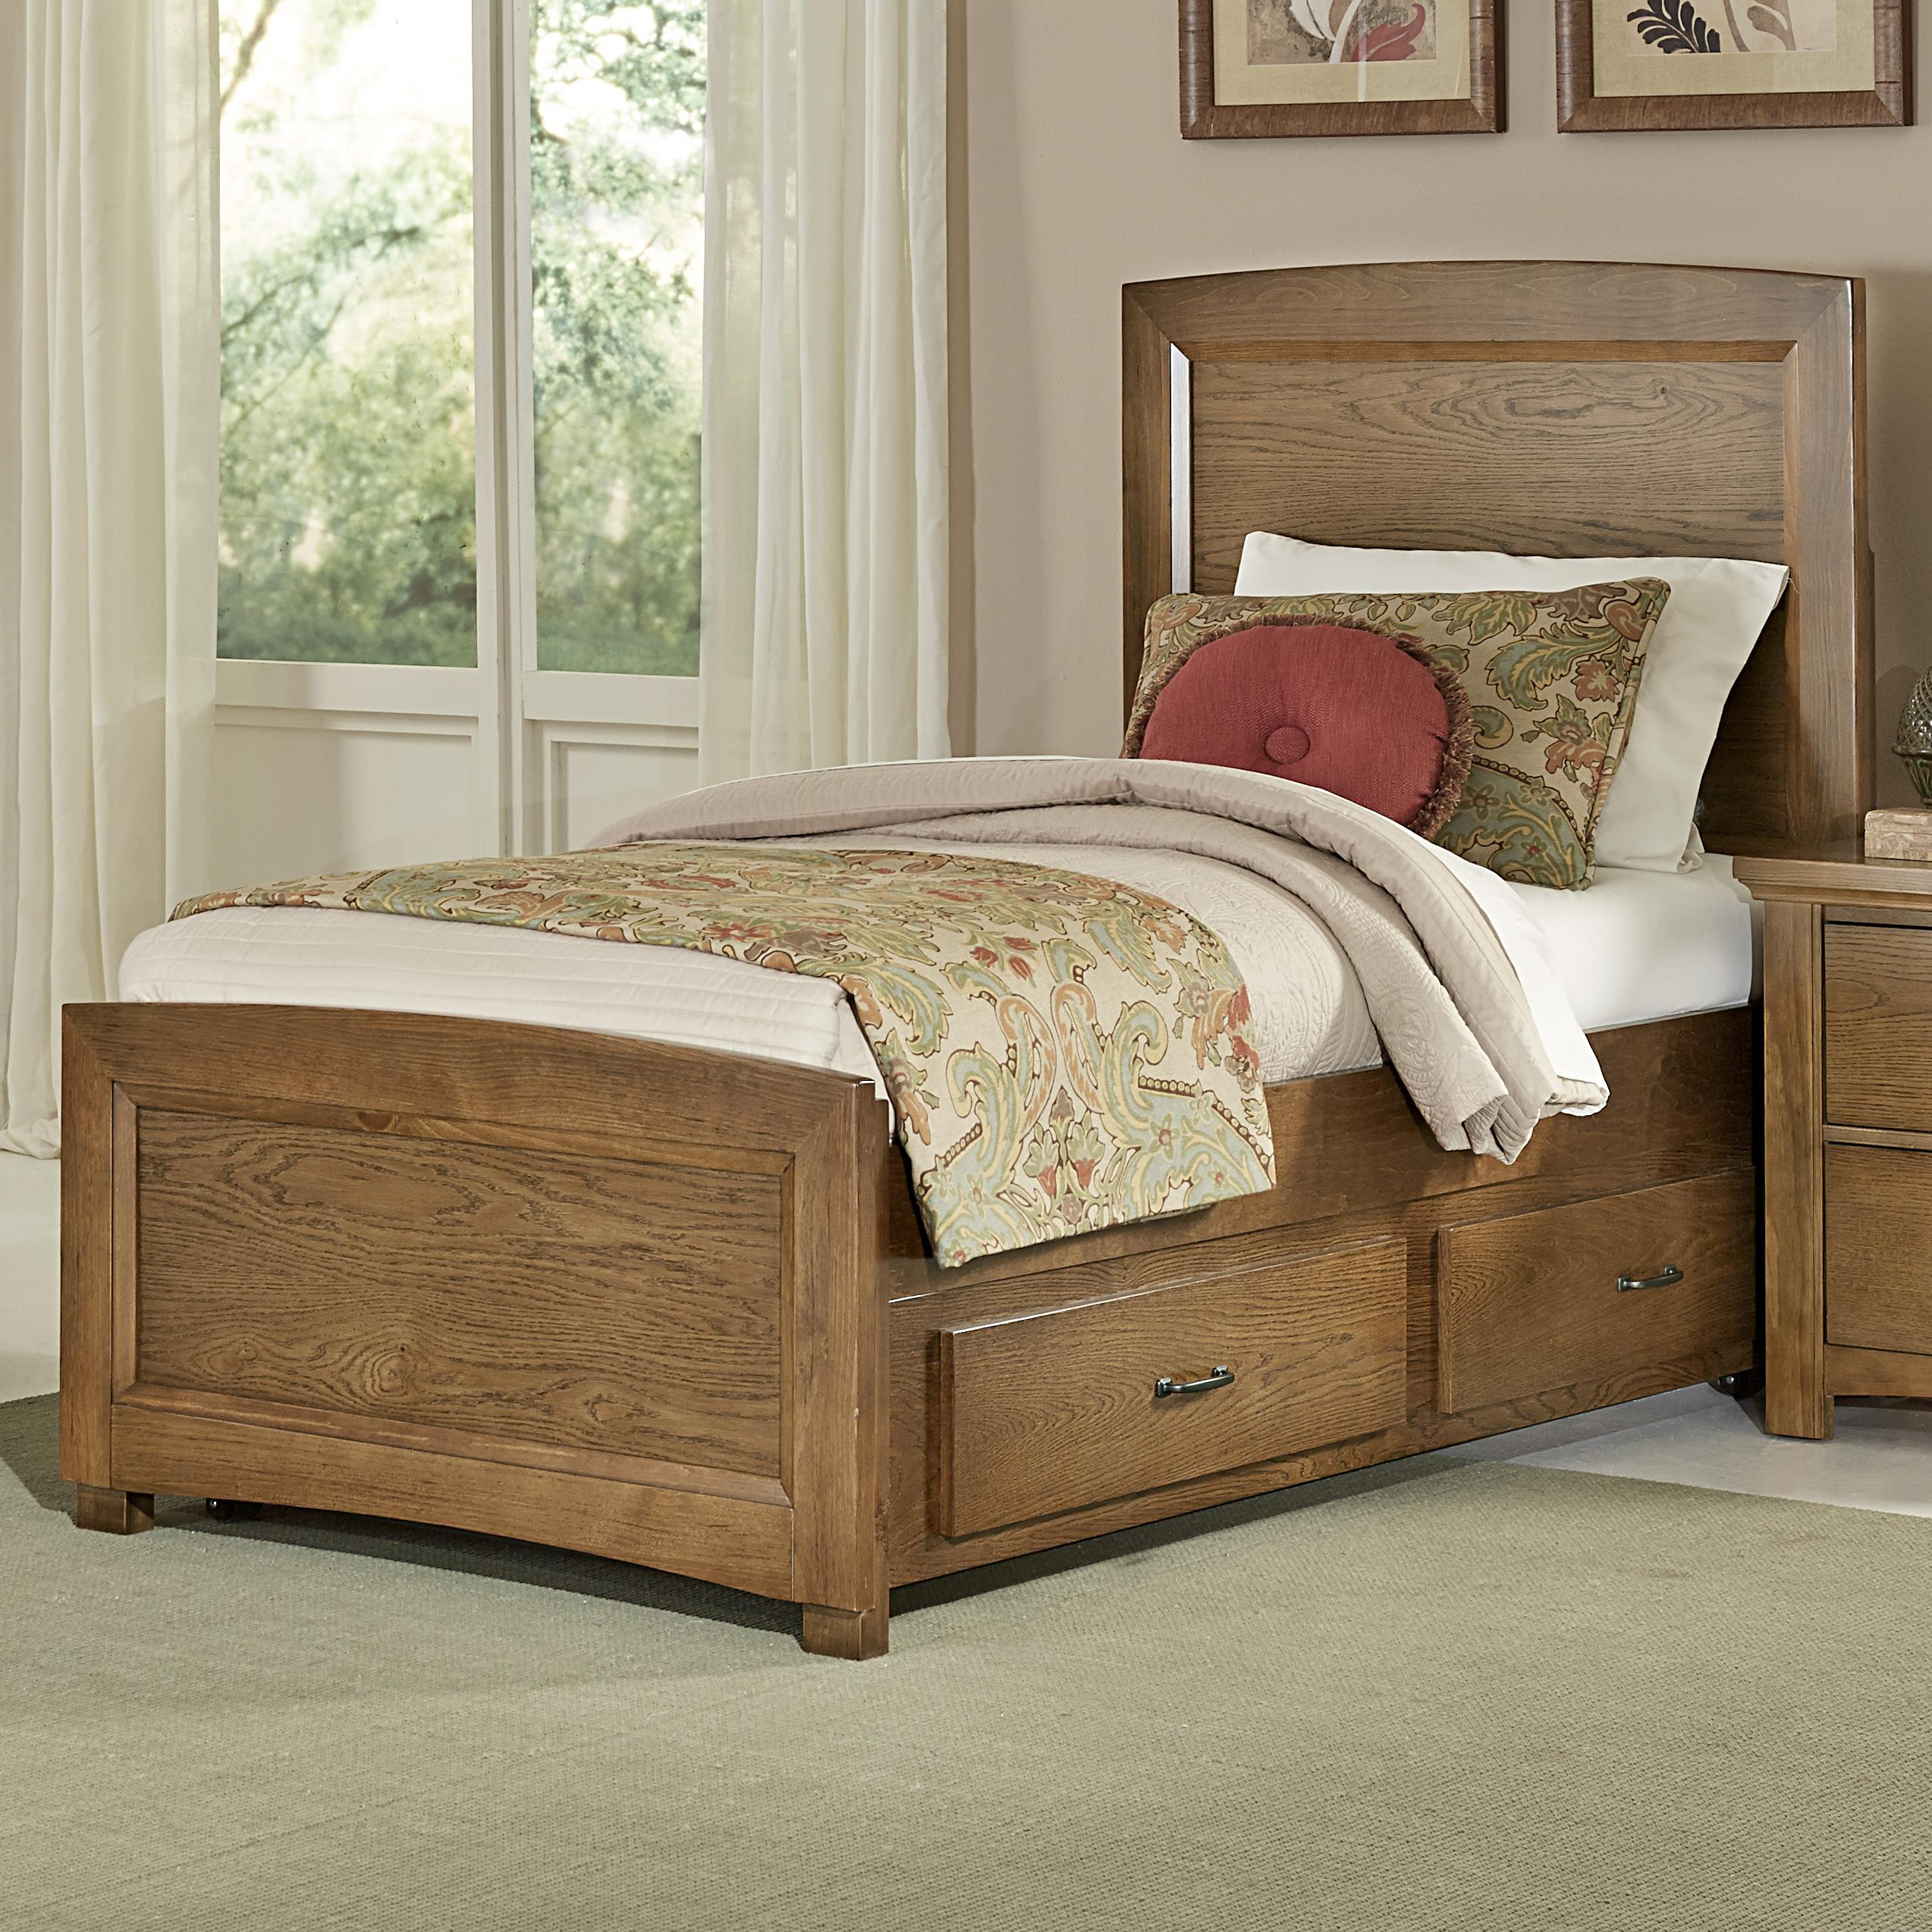 Vaughan Bassett Transitions Twin Panel Bed With Trundle Great American Home Store Platform